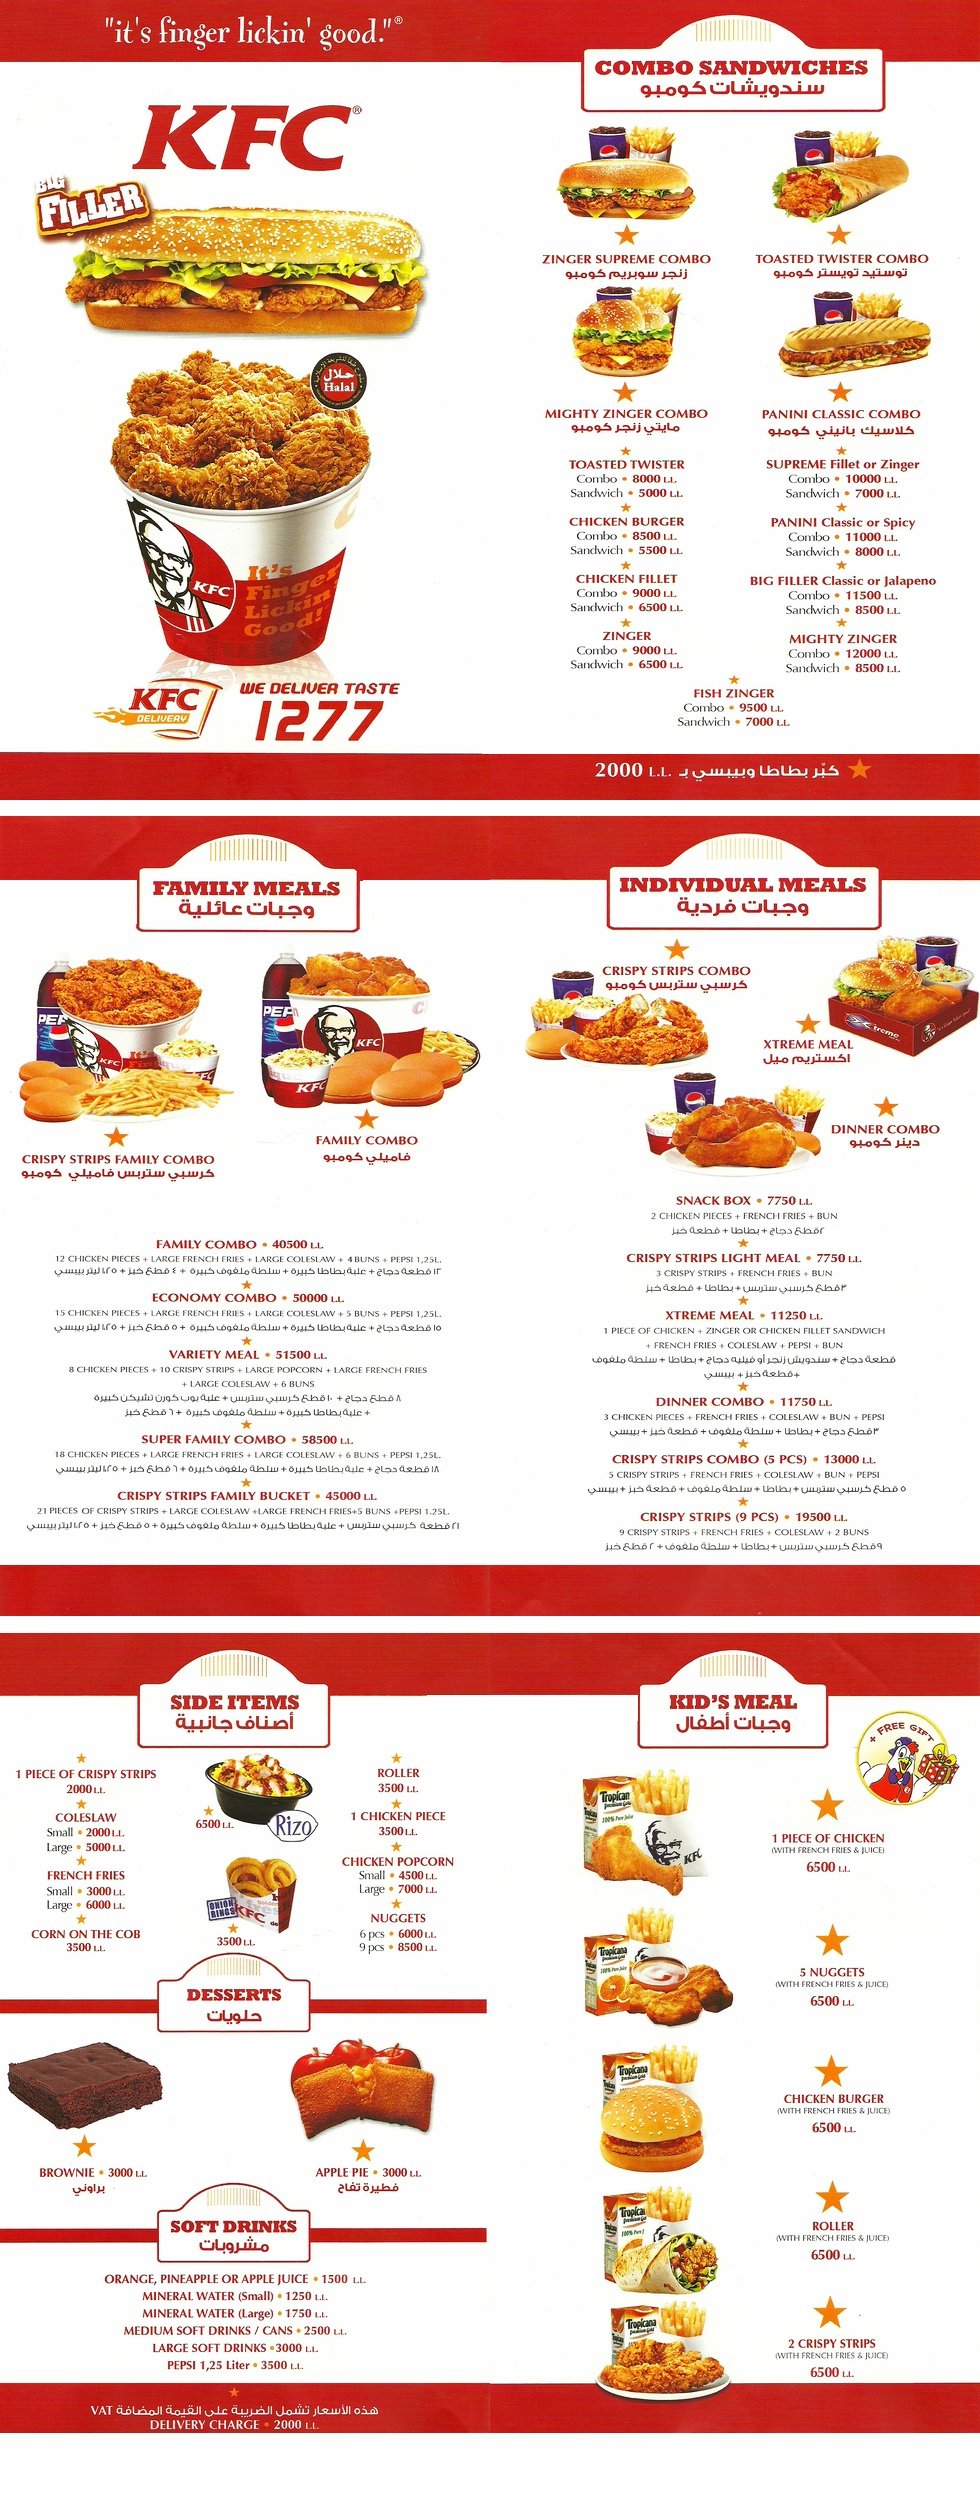 Kfc Printable Menu New Calendar Template Site